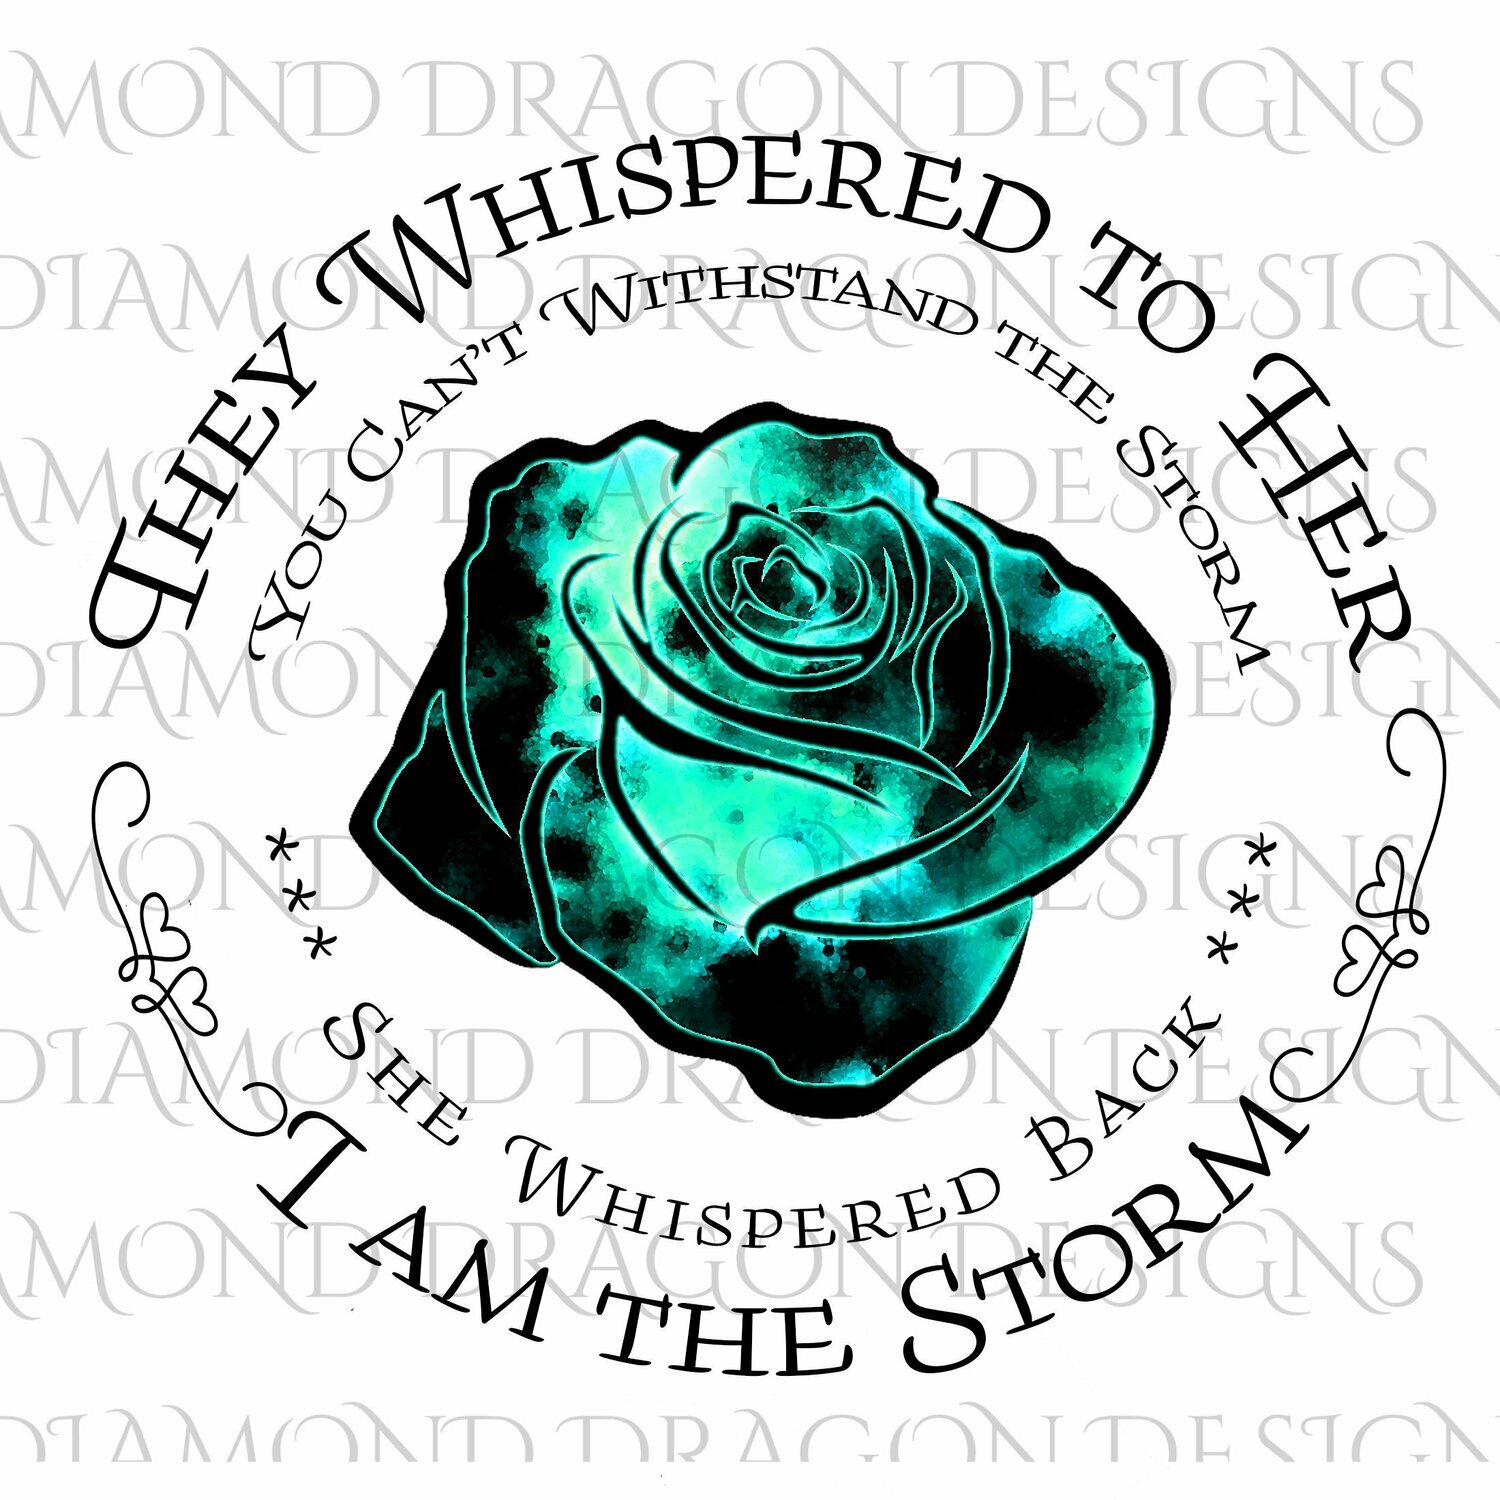 Flowers - They Whispered to Her, Cannot Withstand the Storm, I am the Storm, Quote, Teal Watercolor Galaxy, Rose, Waterslide